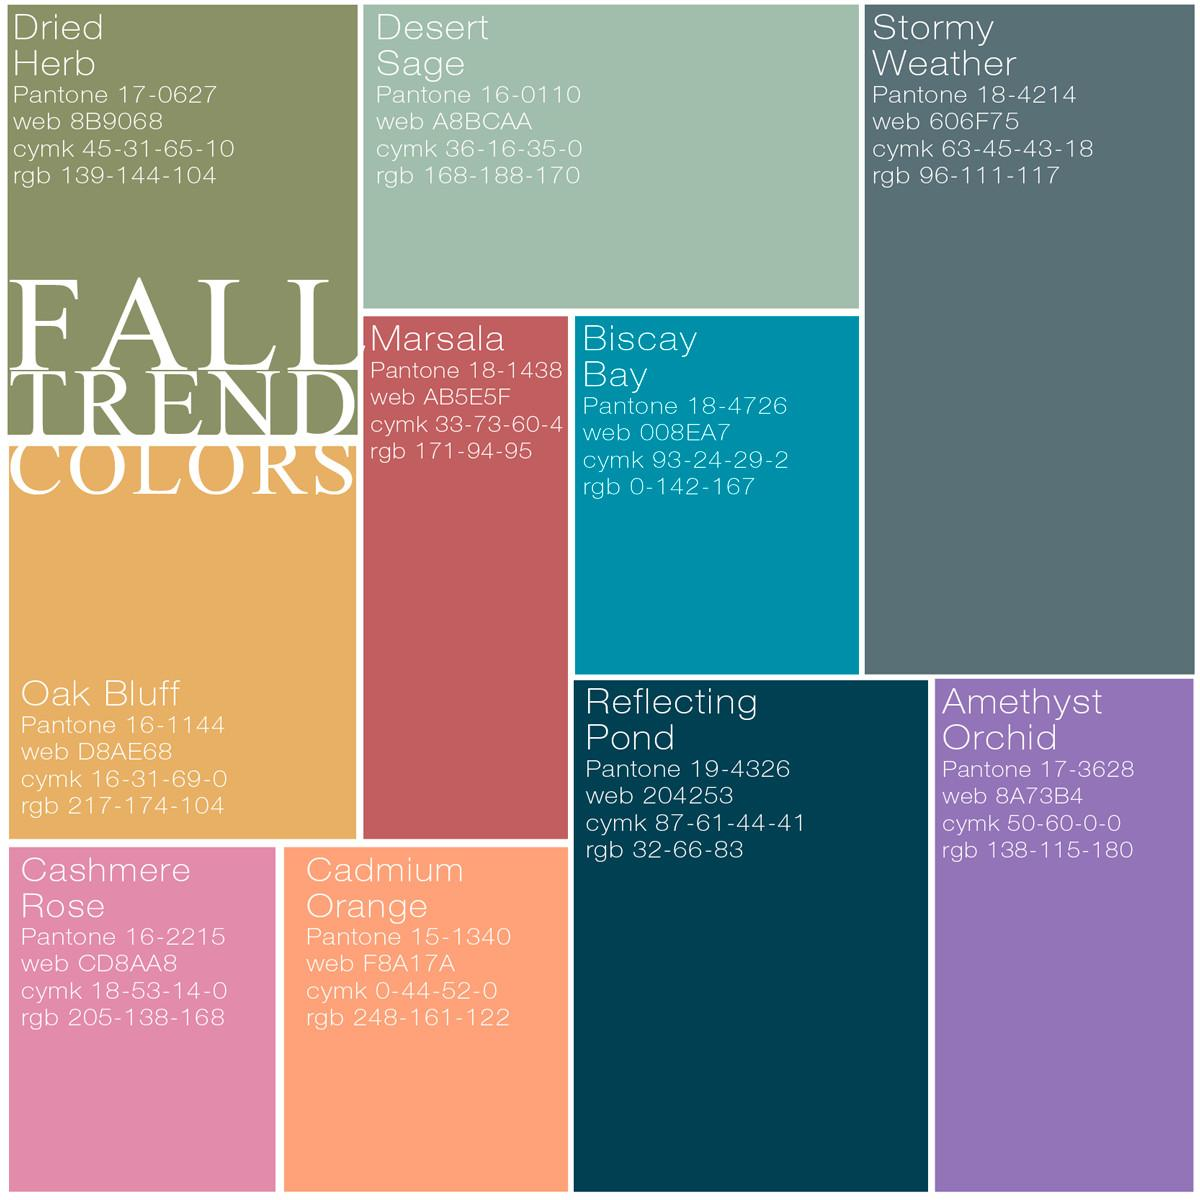 Passion Flowers Fall Trend Colors Pantone Top